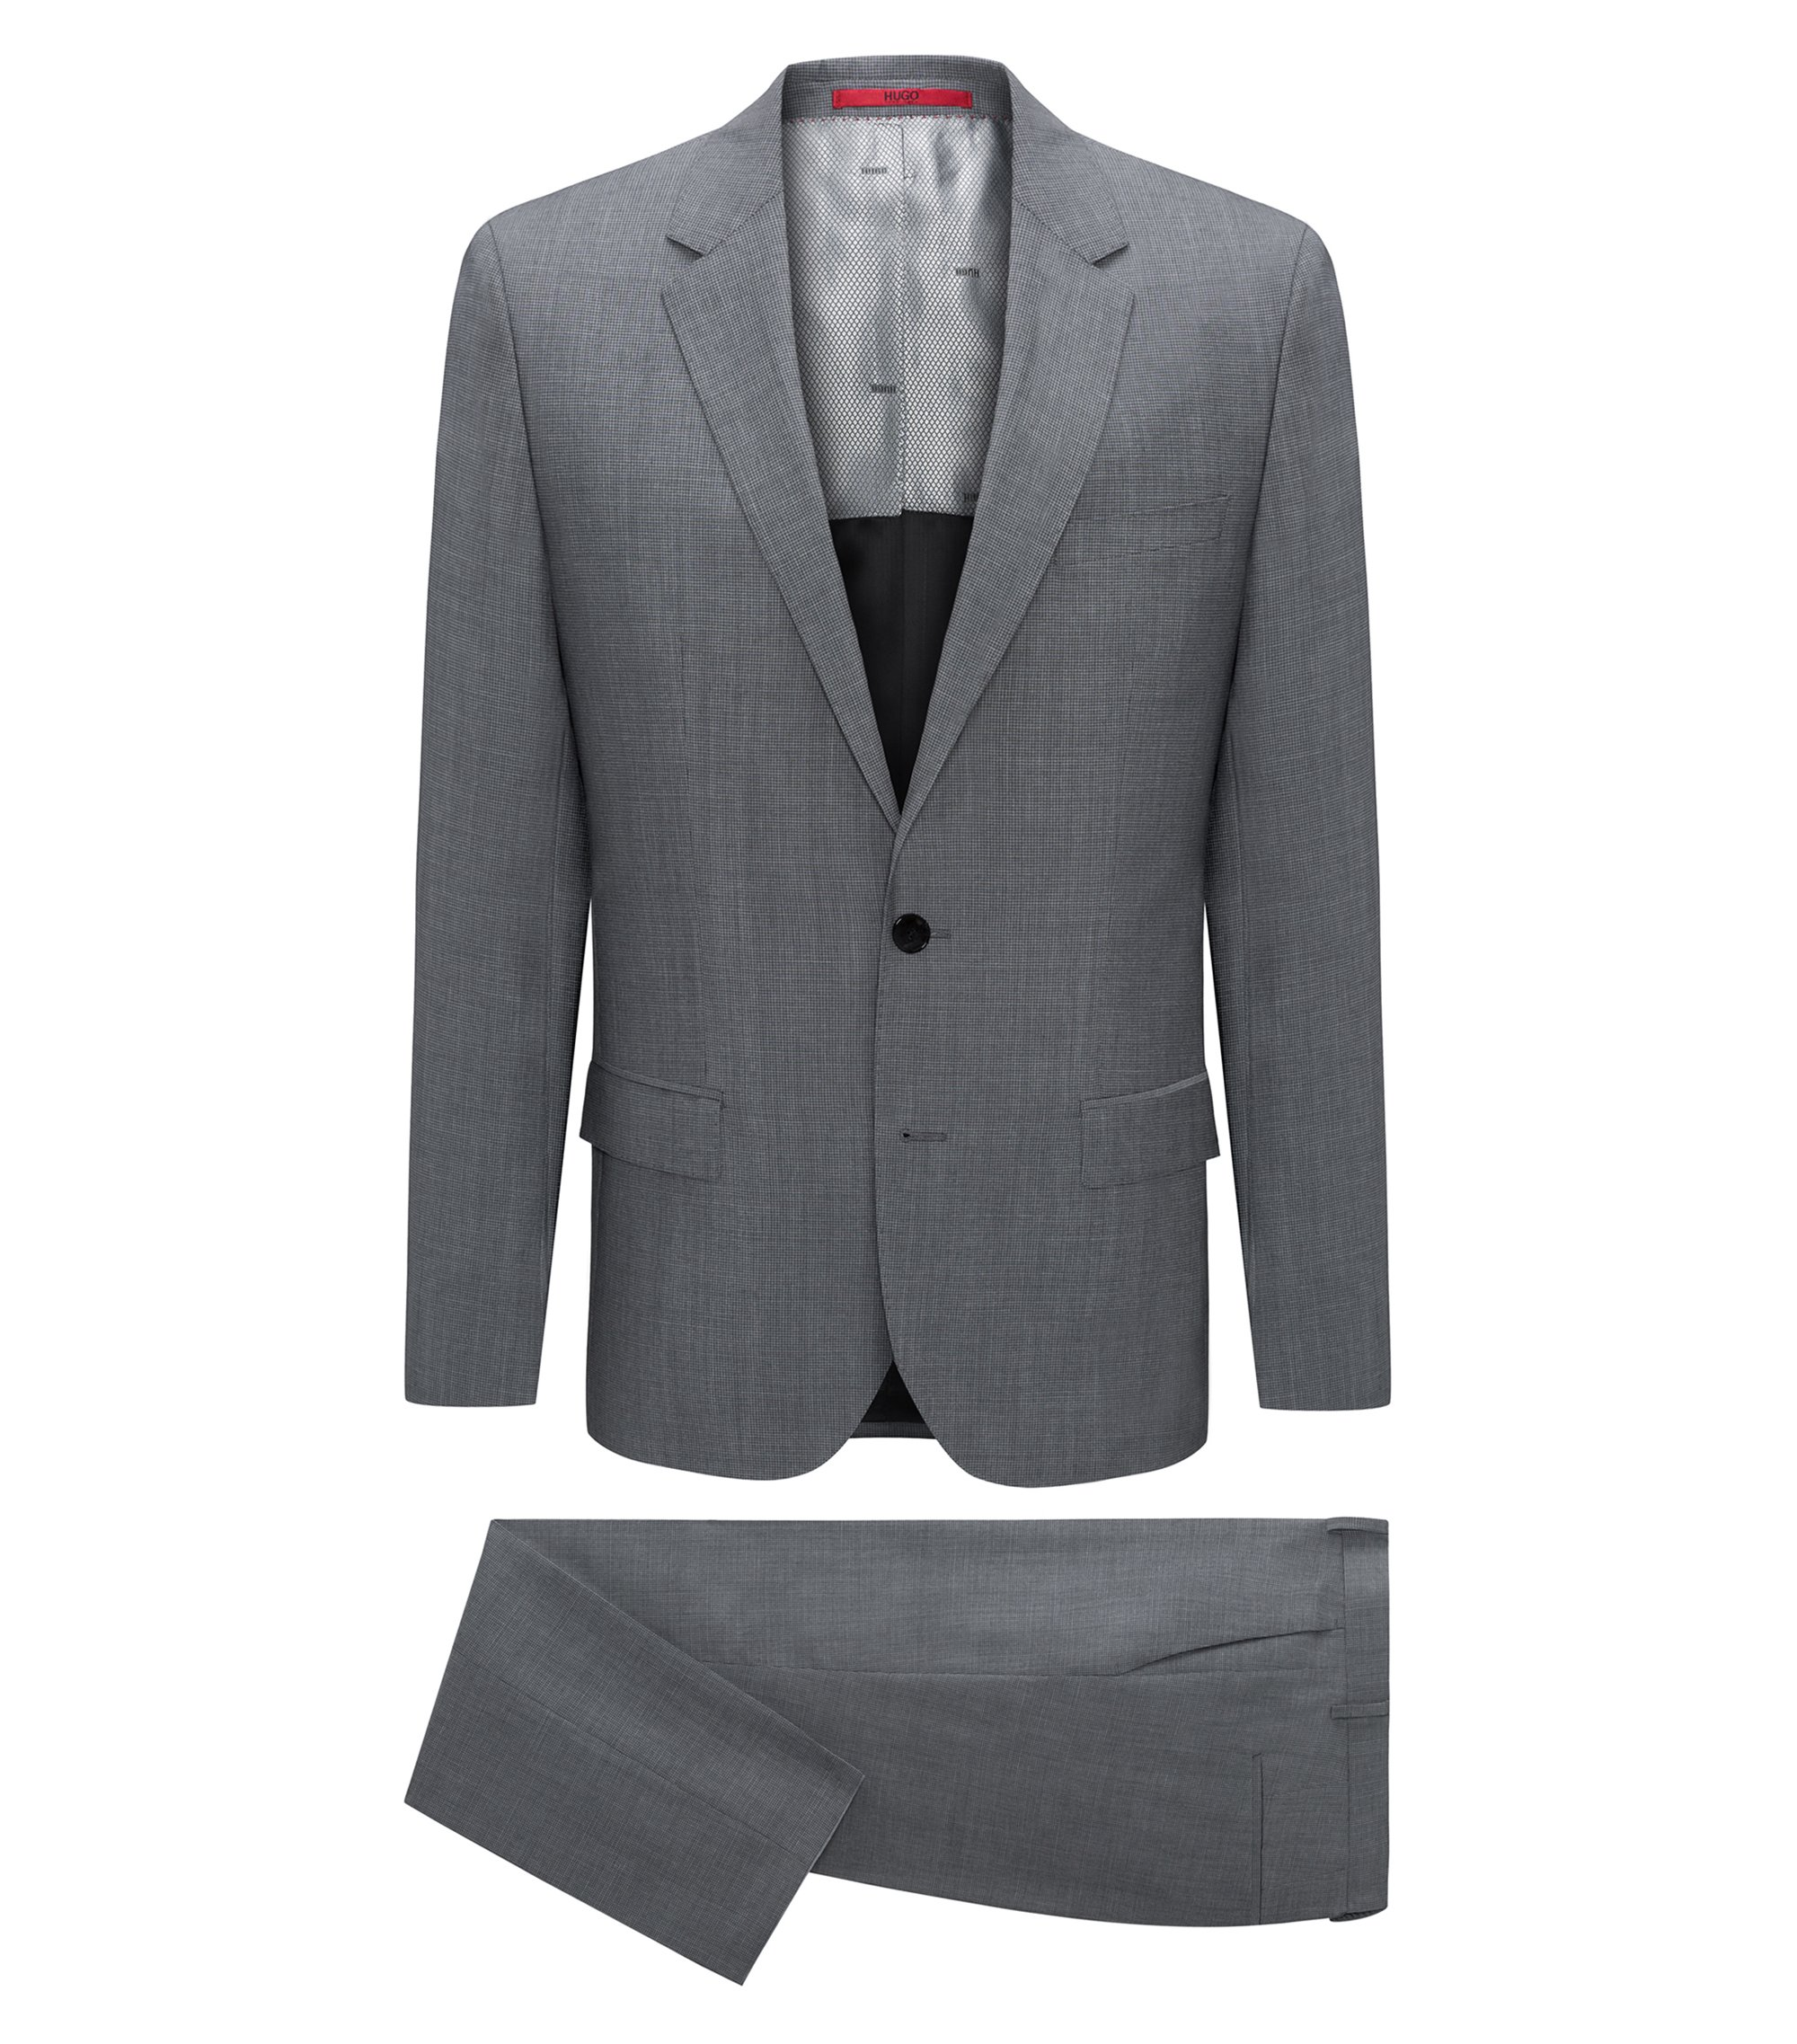 Costume Slim Fit en laine vierge à micro-carreaux, Gris